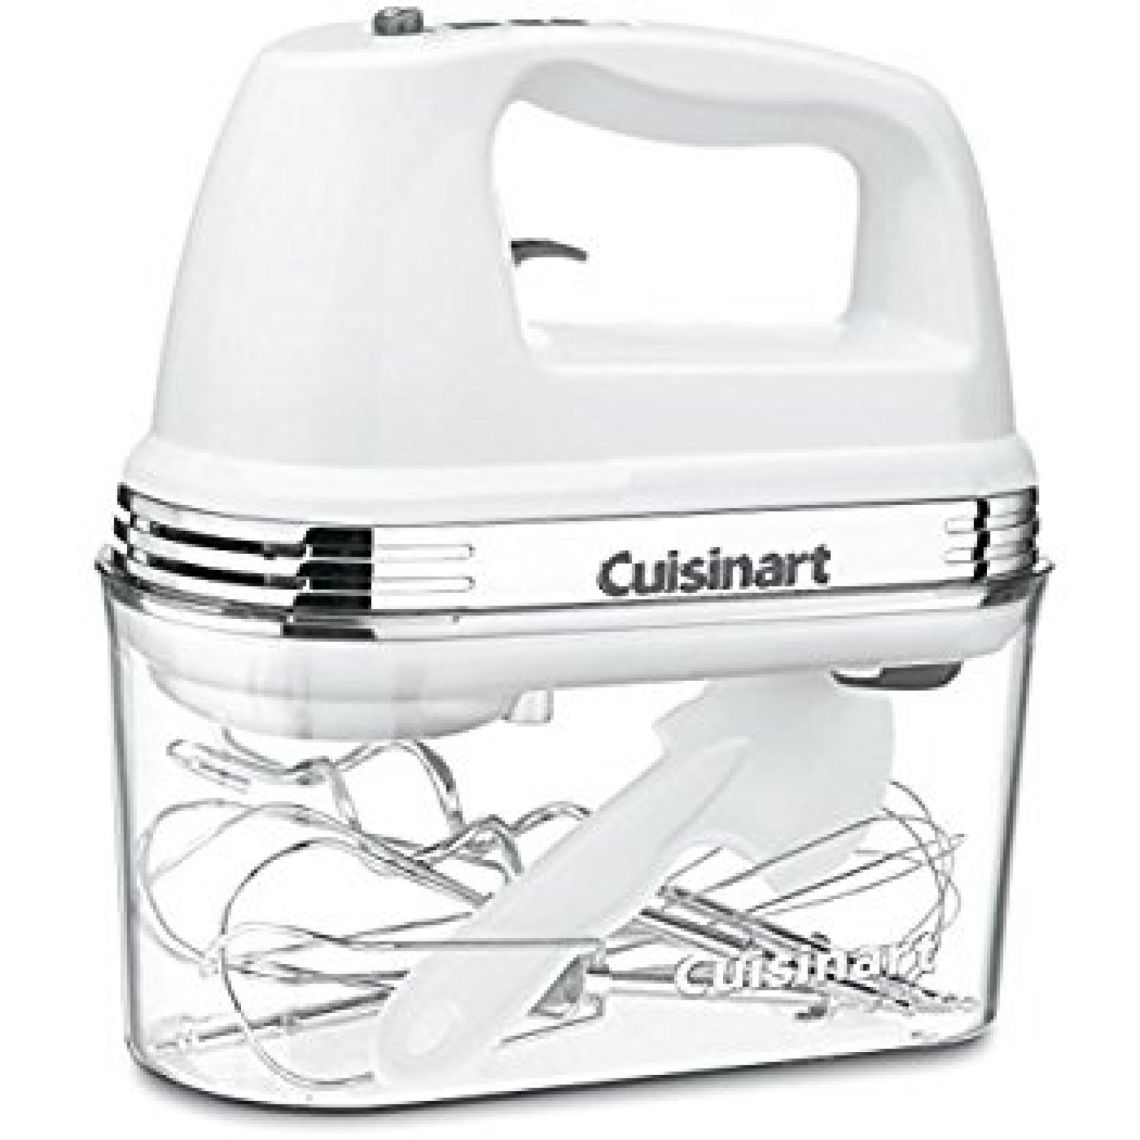 Amazon.com: Cuisinart HM-90S Power Advantage Plus 9-Speed Handheld Mixer with Storage Case, White: Hand Mixers: Kitchen & Dining